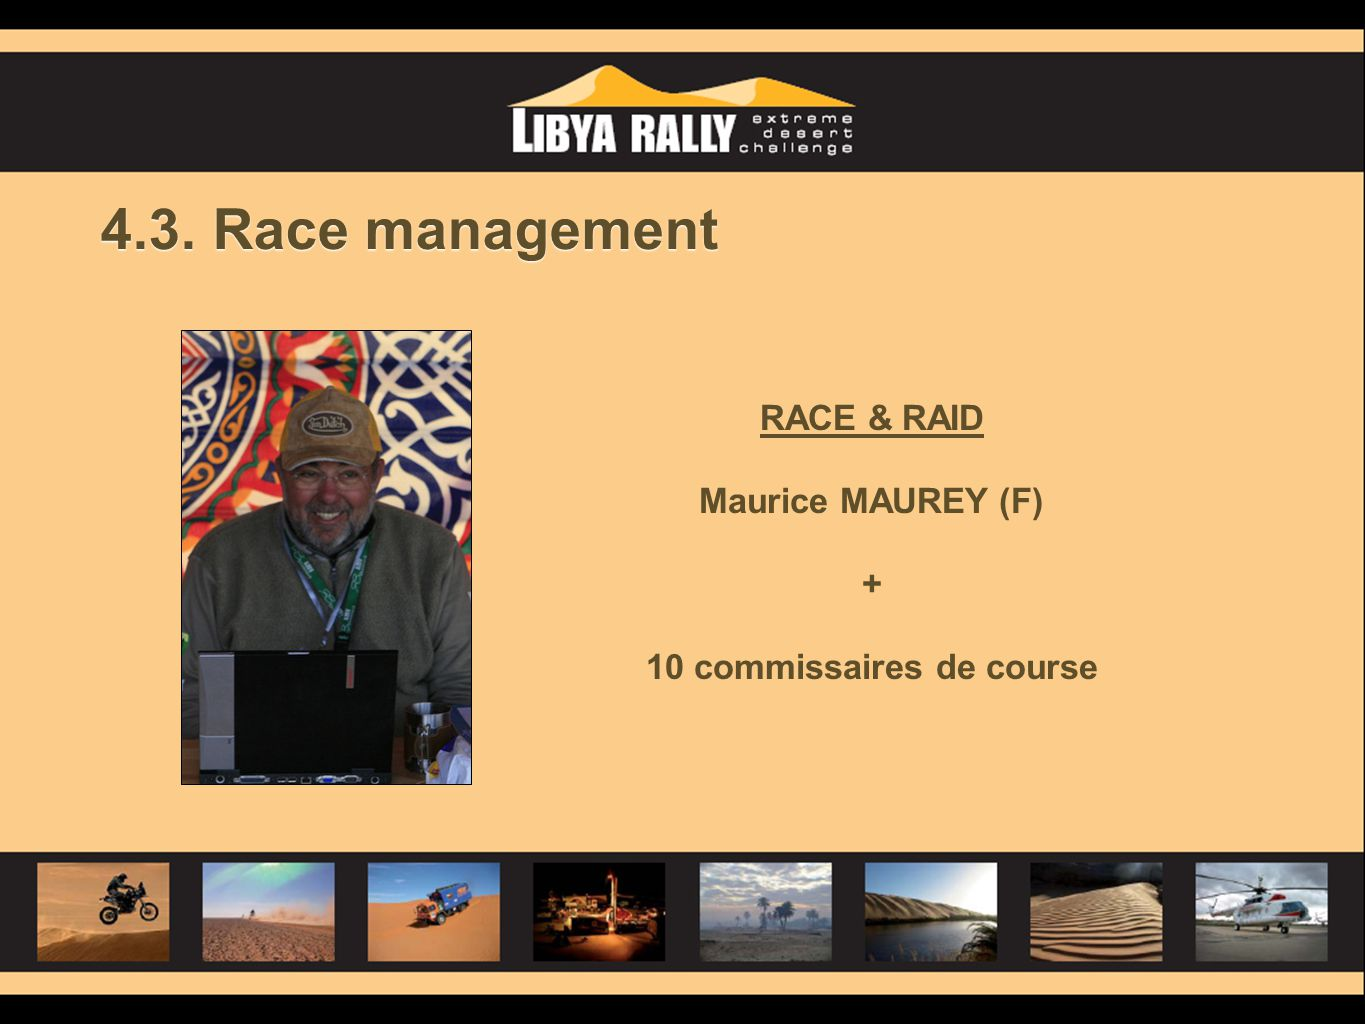 4.3. Race management RACE & RAID Maurice MAUREY (F) + 10 commissaires de course